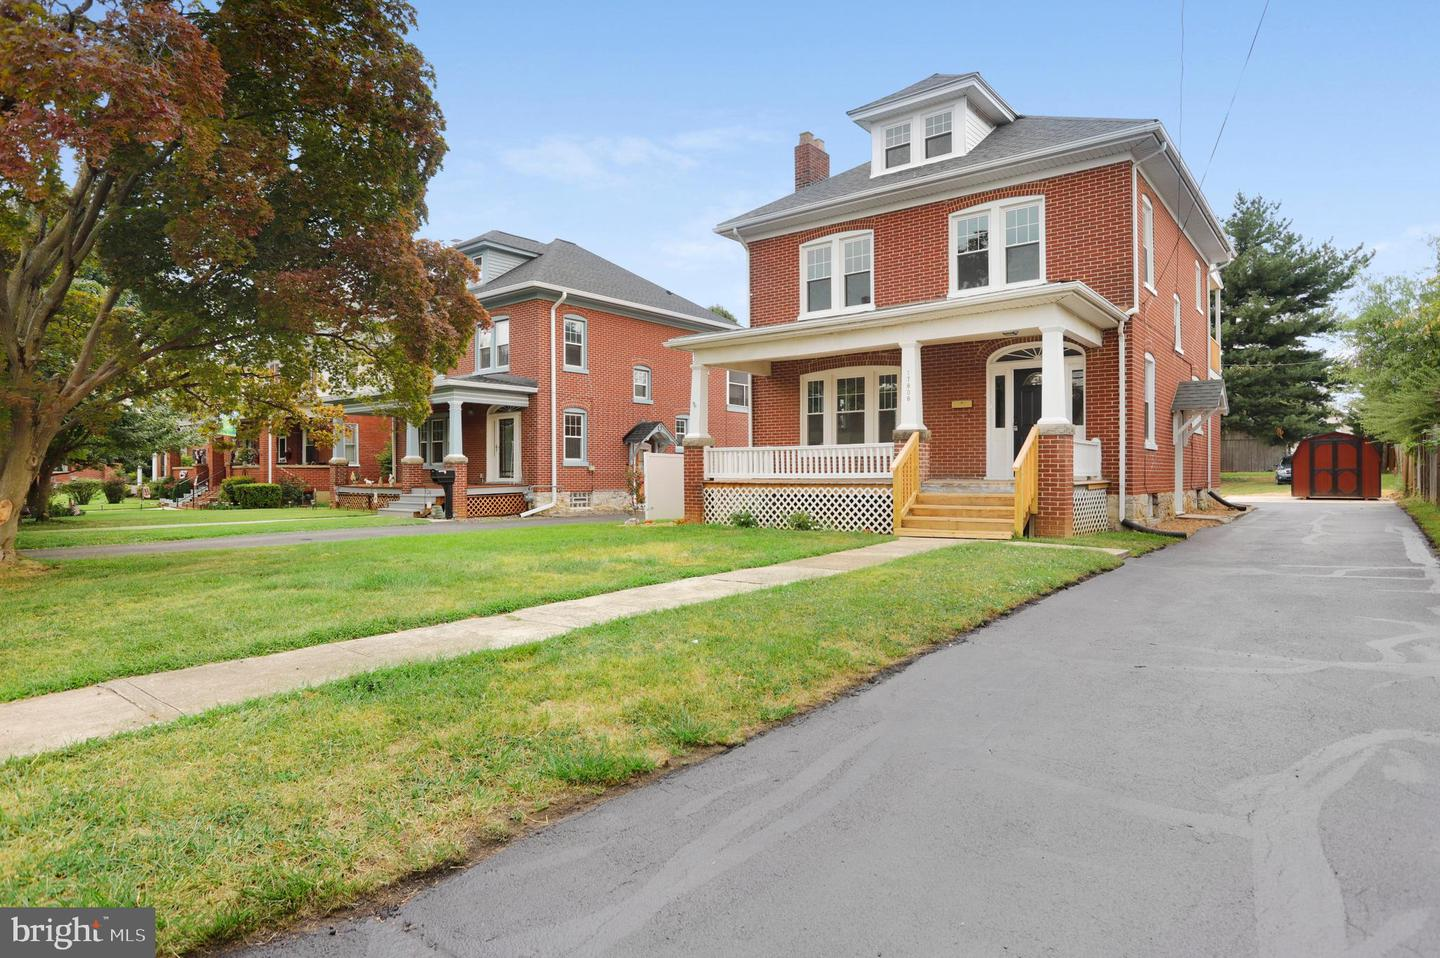 17808 Virginia Avenue, Hagerstown, MD, 21740 - Real Estate